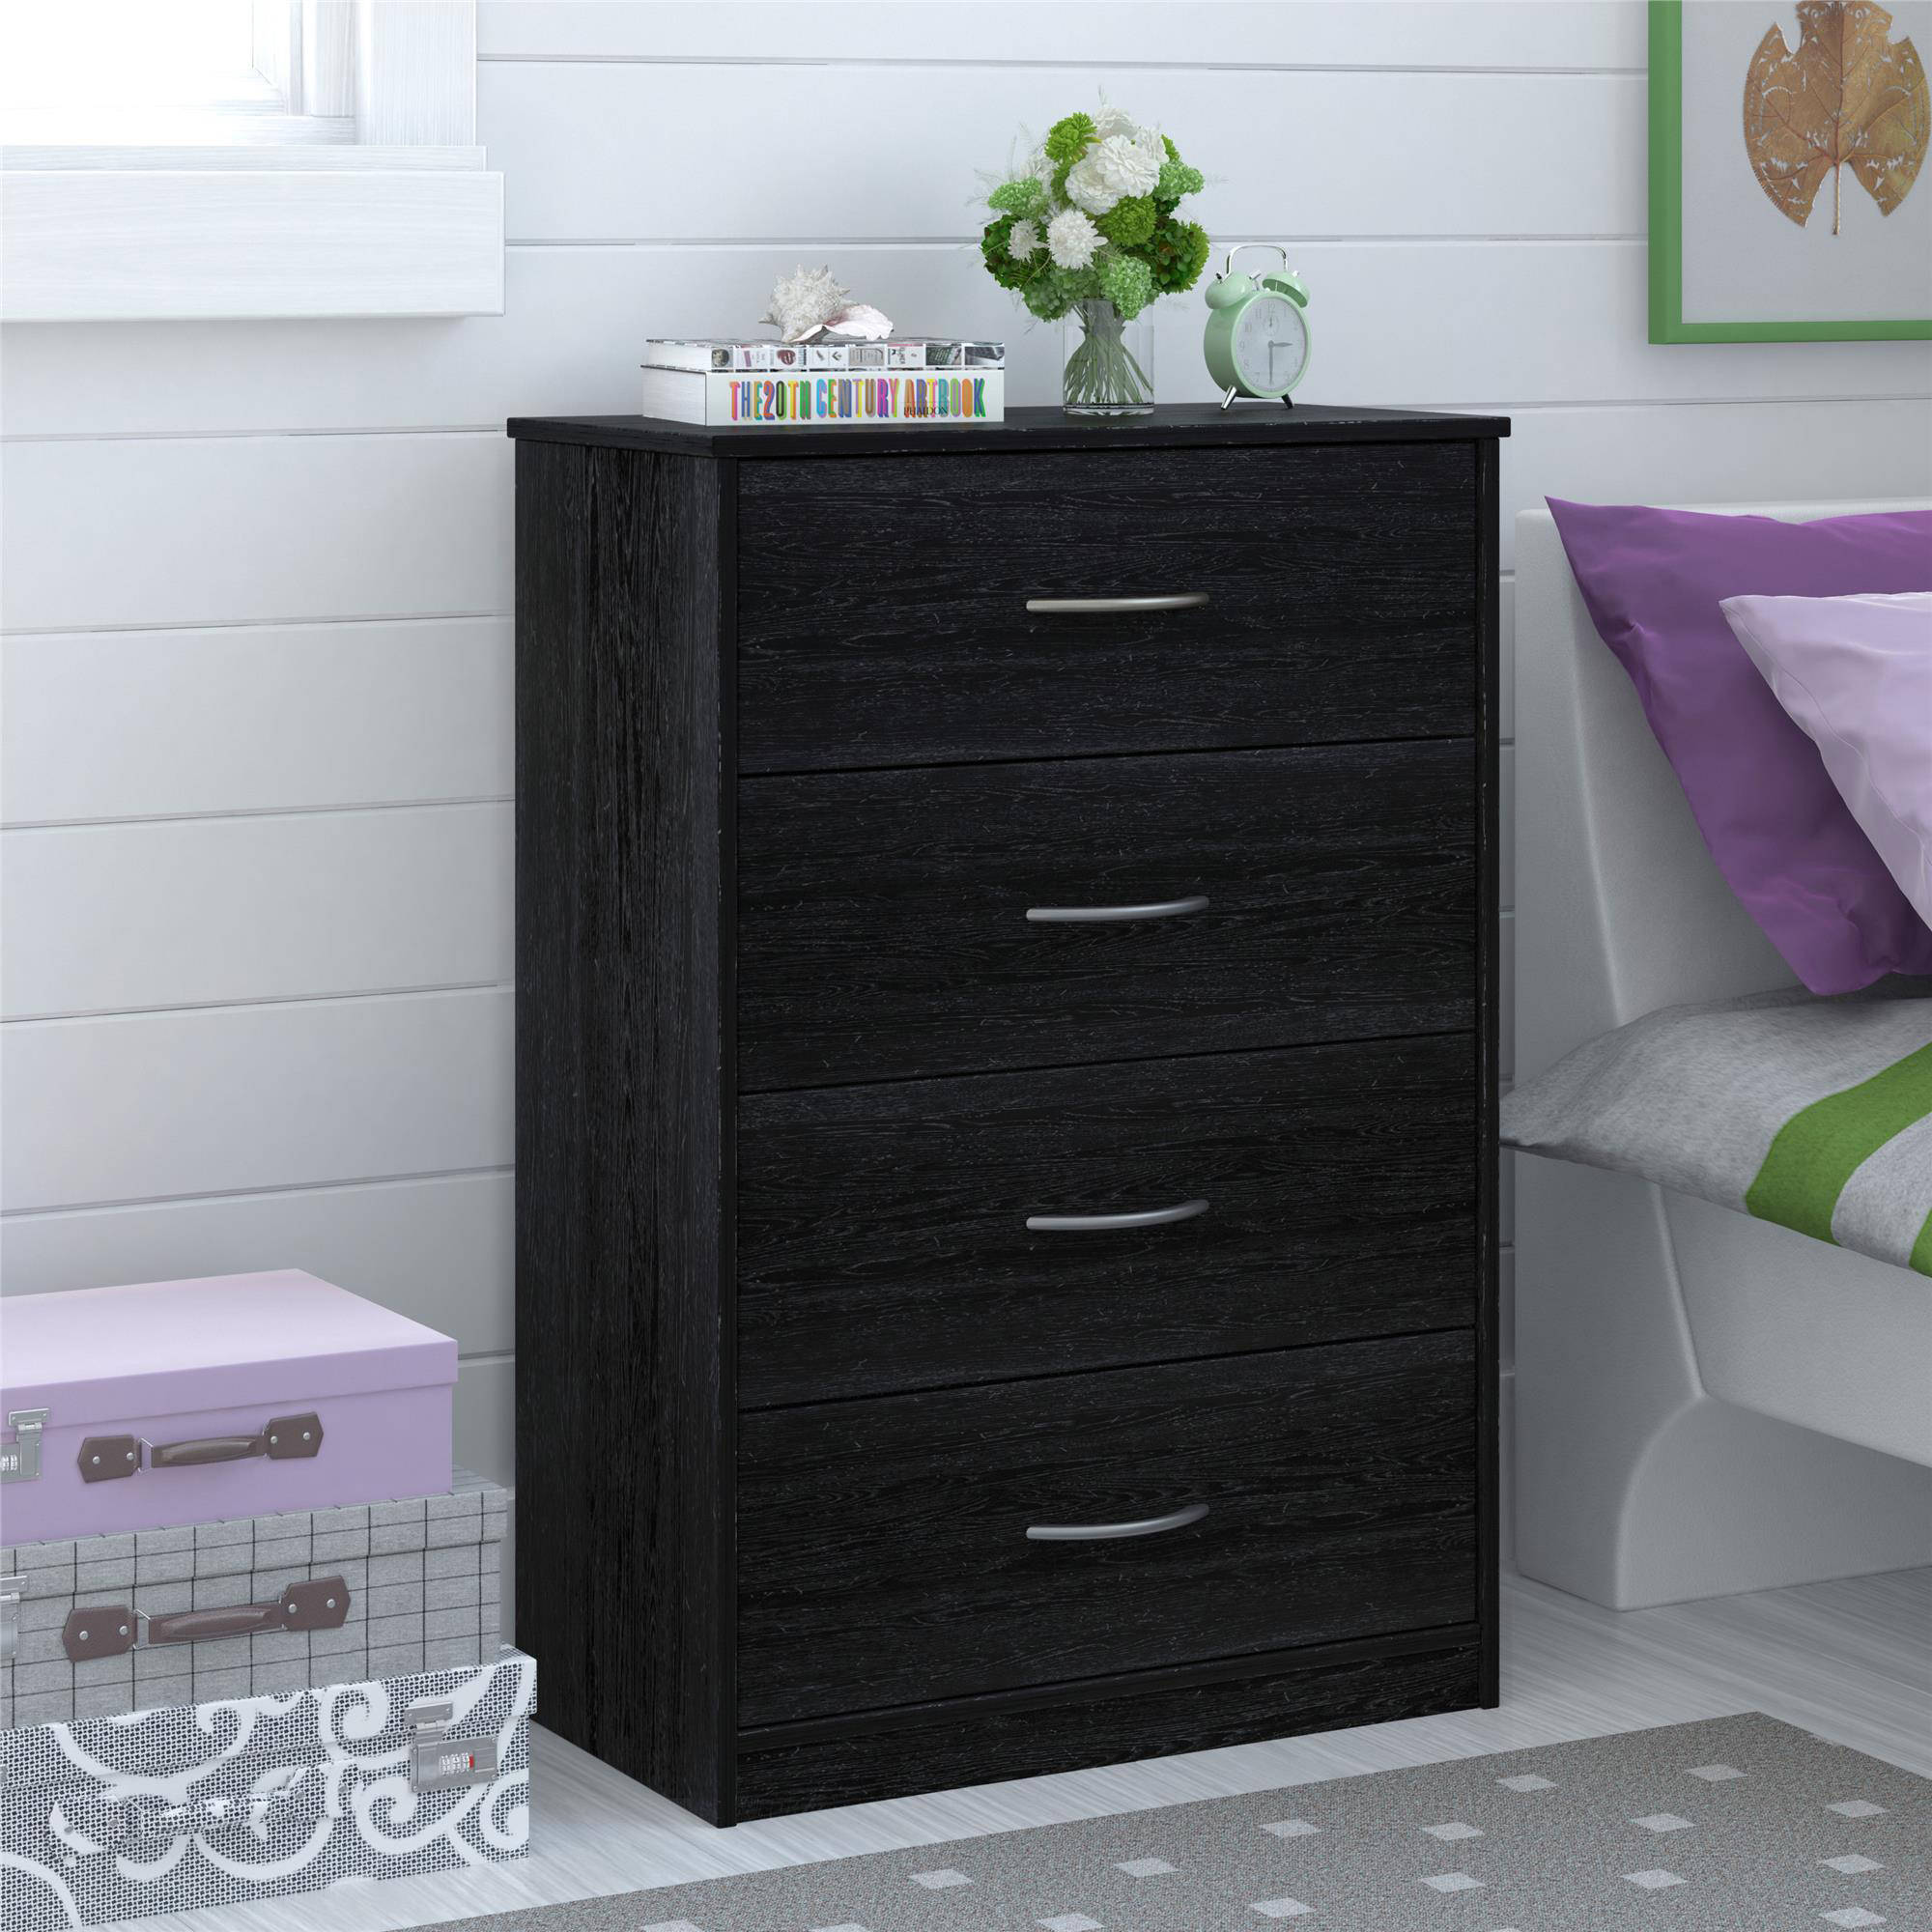 Unique Furniture Design Cabinet with 4 Drawer Dresser for Bedroom Ideas: Luxury 4 Drawer Dresser With Bedding Sets Comforters